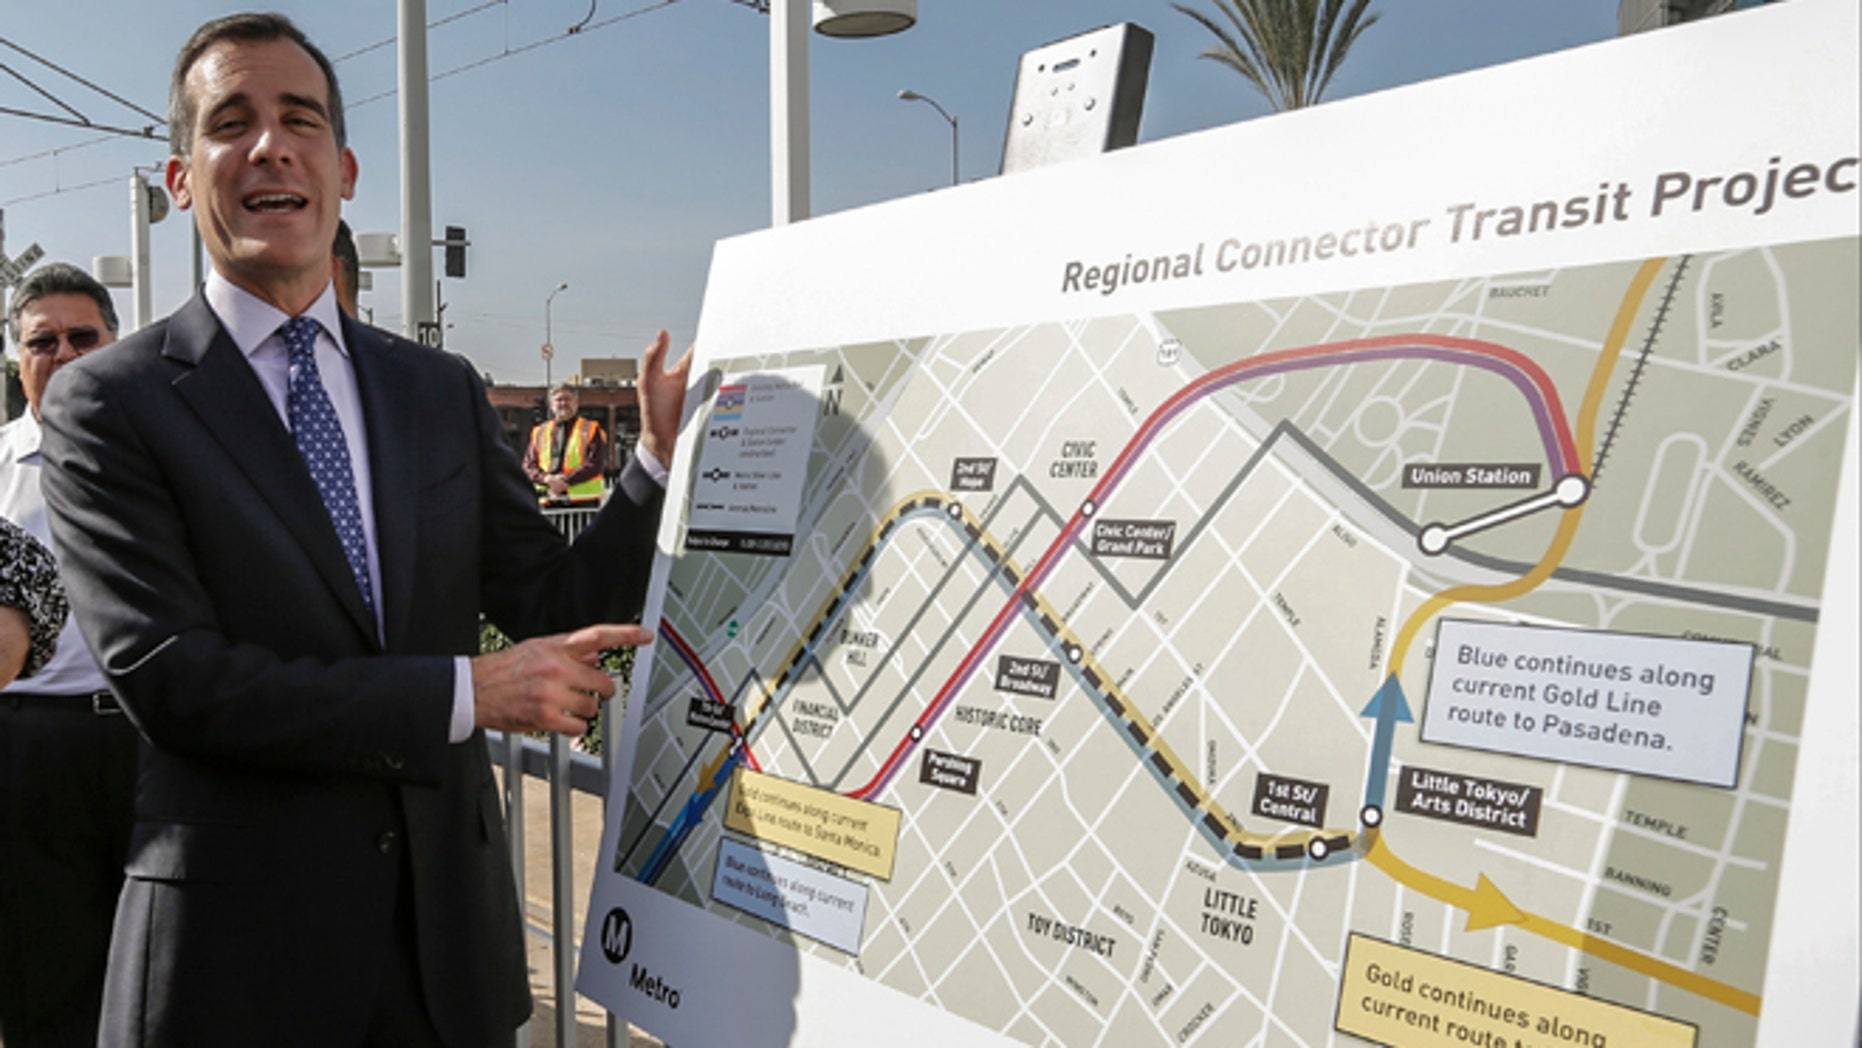 """Los Angeles Mayor Eric Garcetti looks at the proposed """"Regional Connector Transit Project"""" plan as he attends a federal grant signing ceremony in Los Angeles Thursday, Feb. 20, 2014. The light rail public transit system in Los Angeles is getting $670 million to solve one of its most vexing design deficiencies: Train riders who want to travel from one side of downtown and out the other must transfer twice. The """"regional connector,"""" as the Los Angeles County Metropolitan Transportation Authority calls it, will tie together three existing light rail lines with a new tunnel and three new stations. Major construction should begin later this year, with a cost estimated of $1.4 billion, to be opened in 2020. (AP Photo/Damian Dovarganes)"""